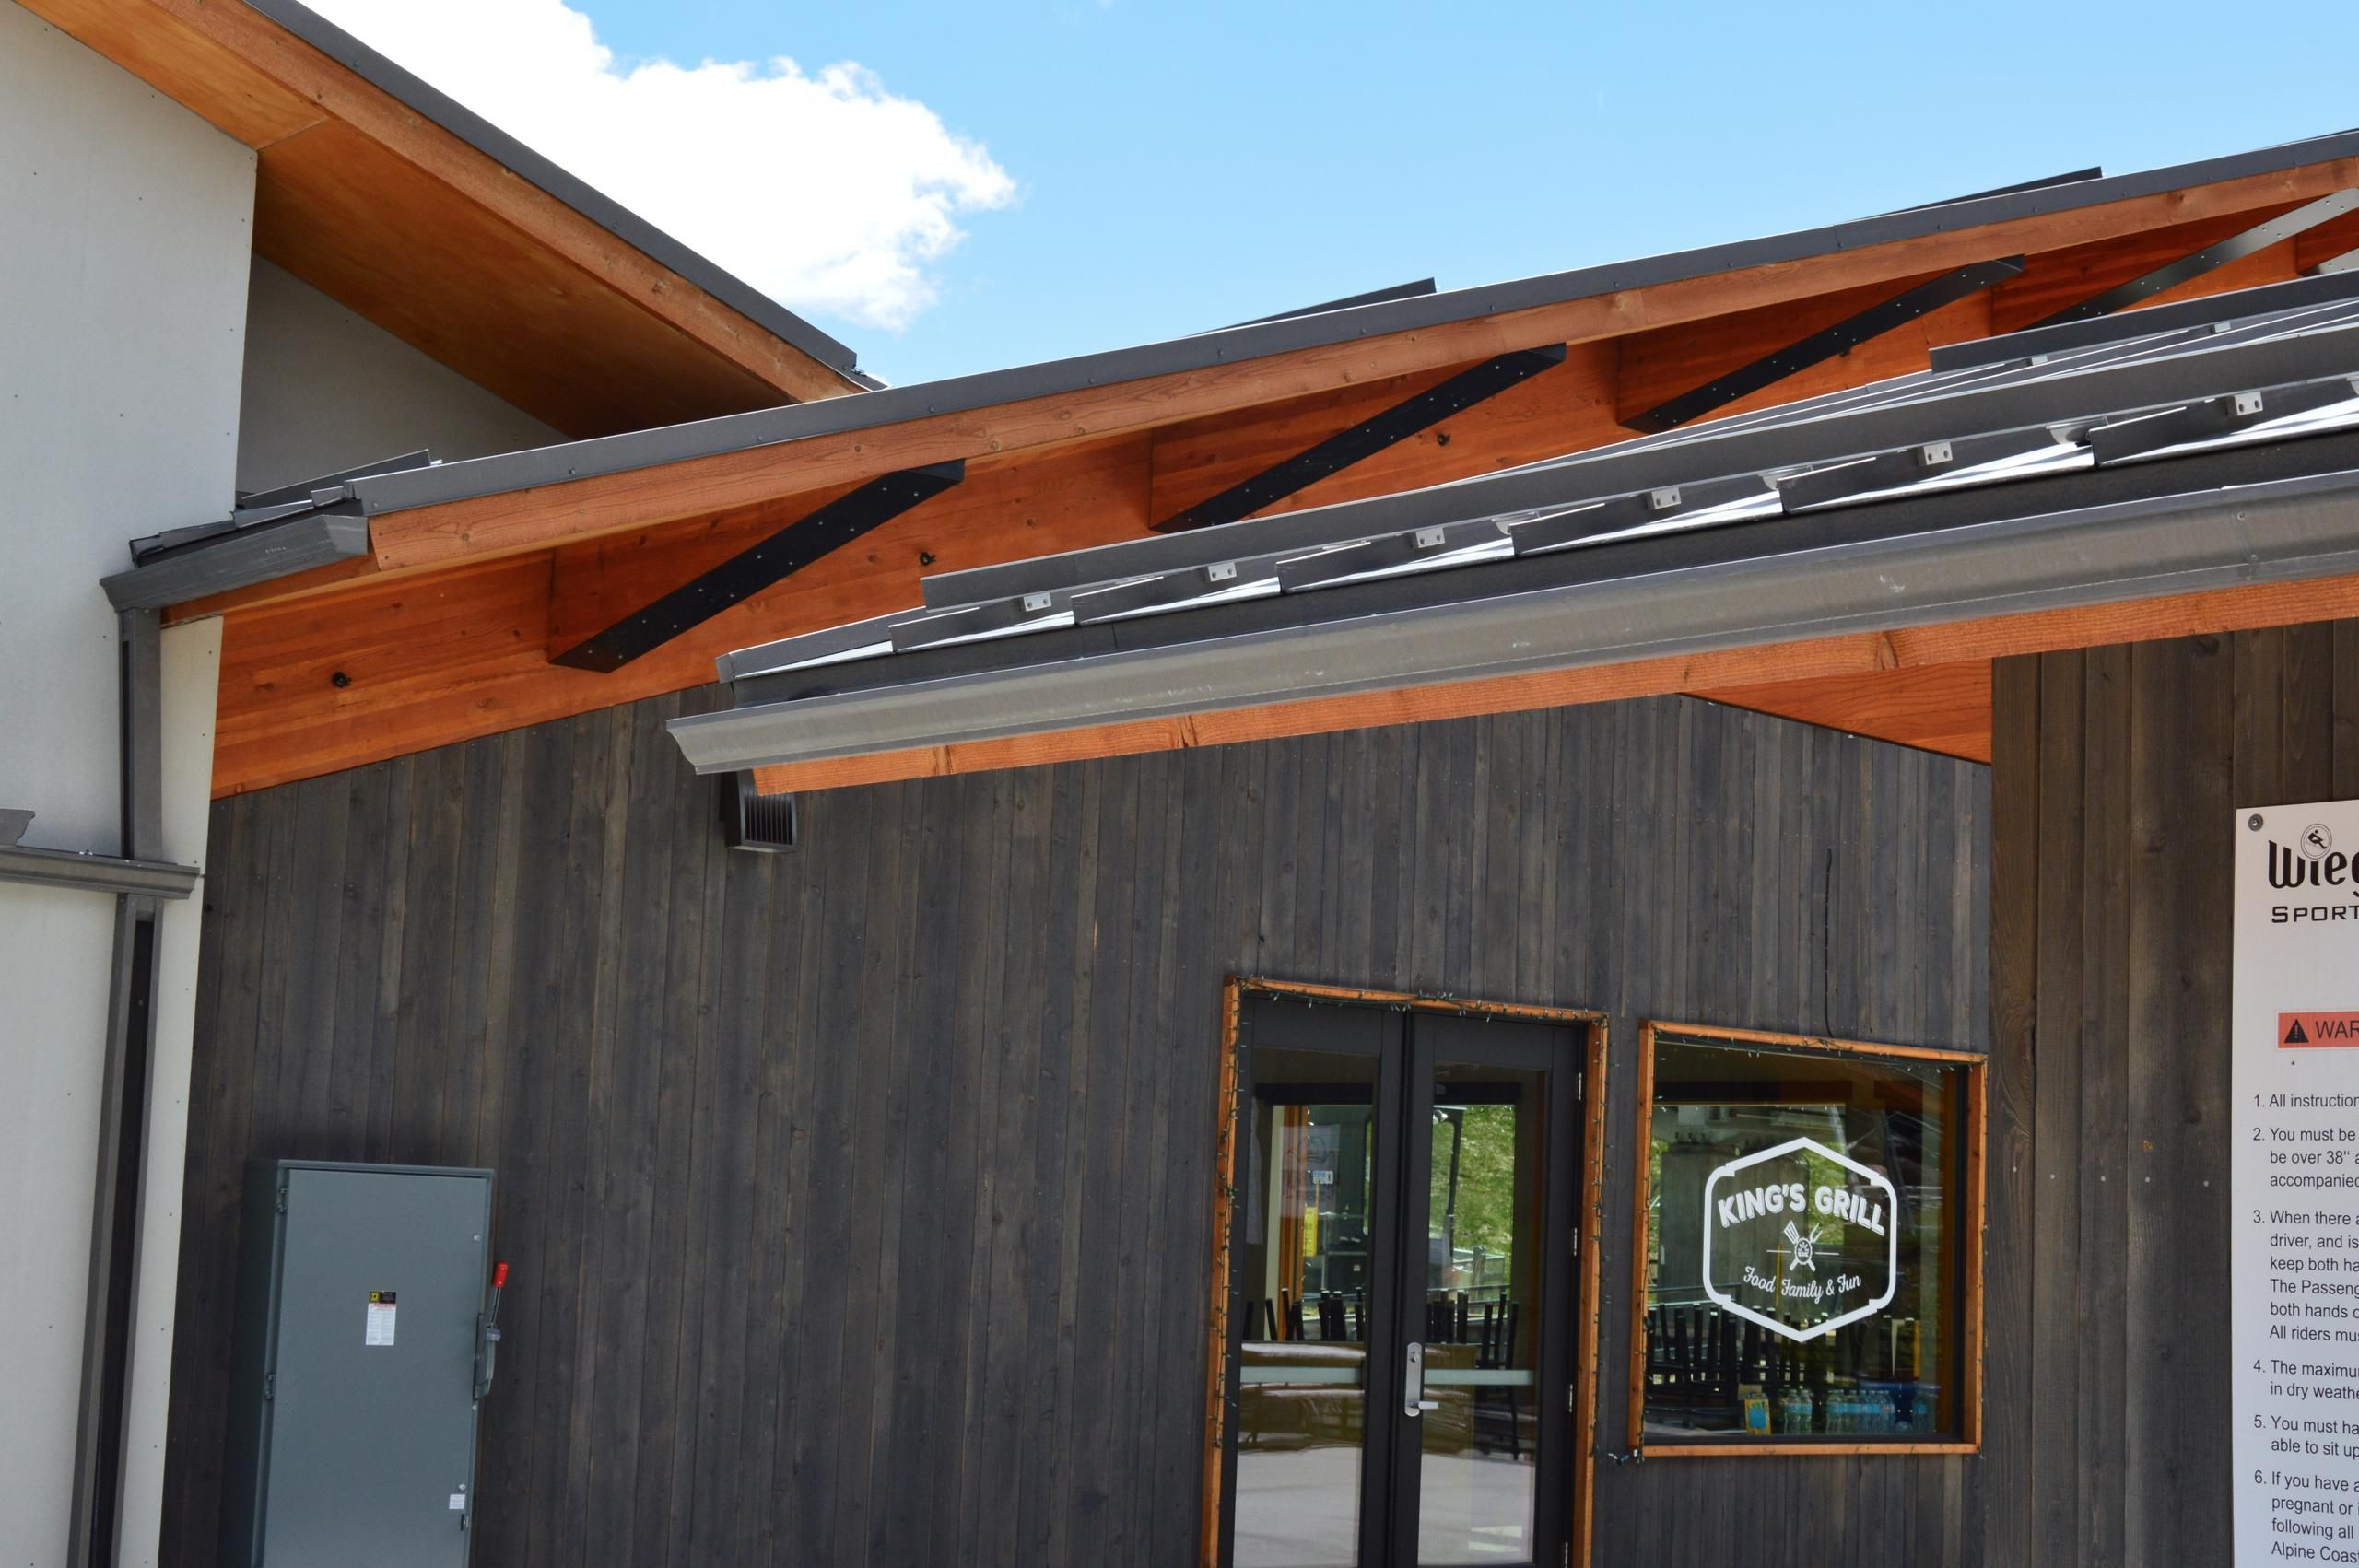 Bonderized Metal Roofing With Trim And Gutter Detail Commercial Metal Roofing Standing Seam Metal Roof Gutters